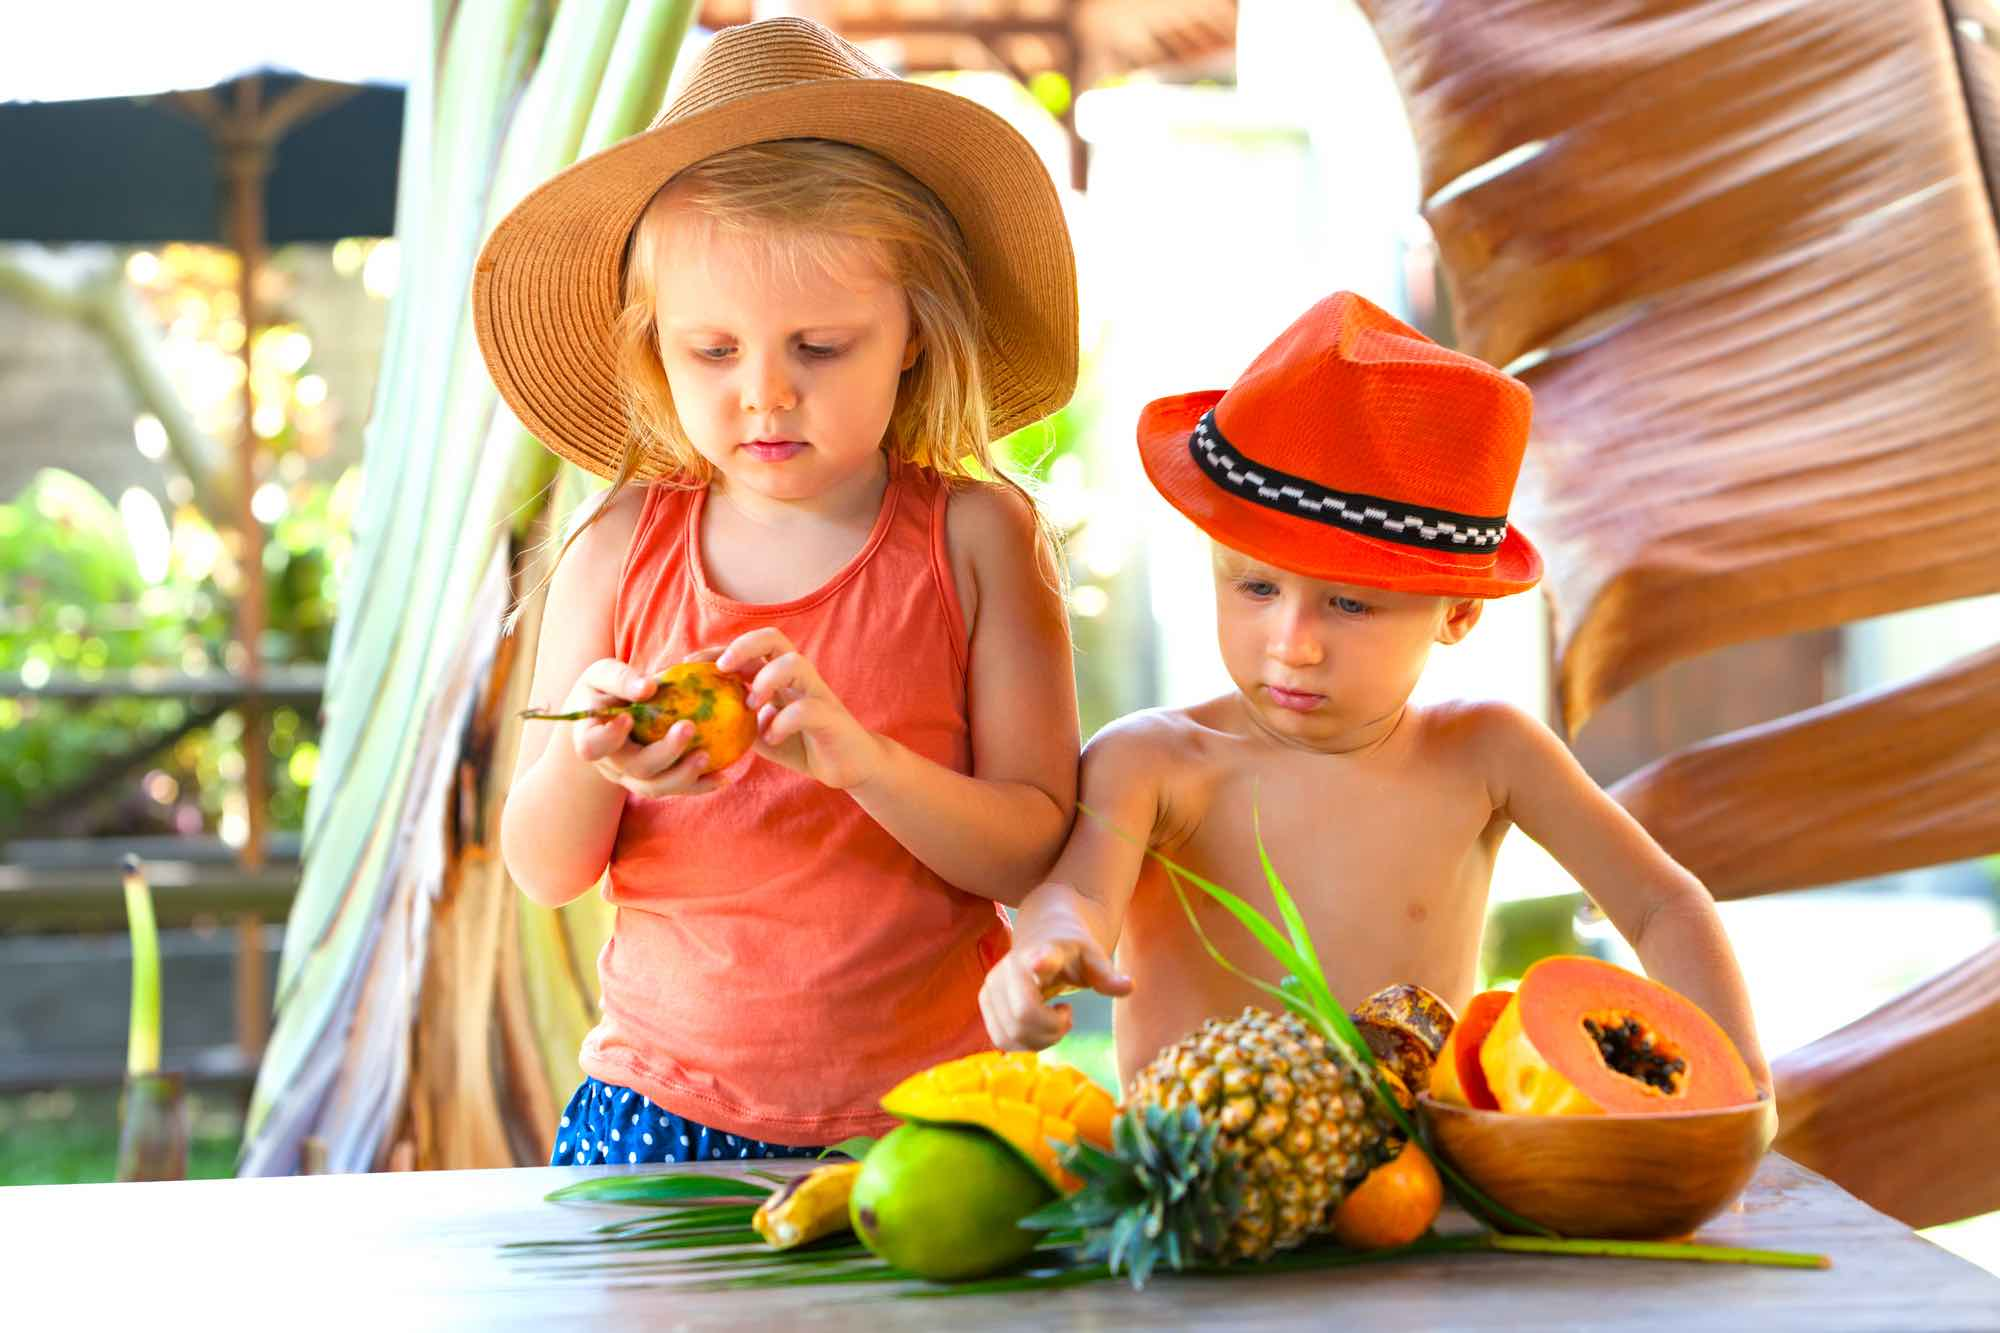 Find out the best Oahu kids activities for toddlers recommended by top Hawaii blog Hawaii Travel with Kids. Image of 2 kids tasting tropical fruit in Hawaii.